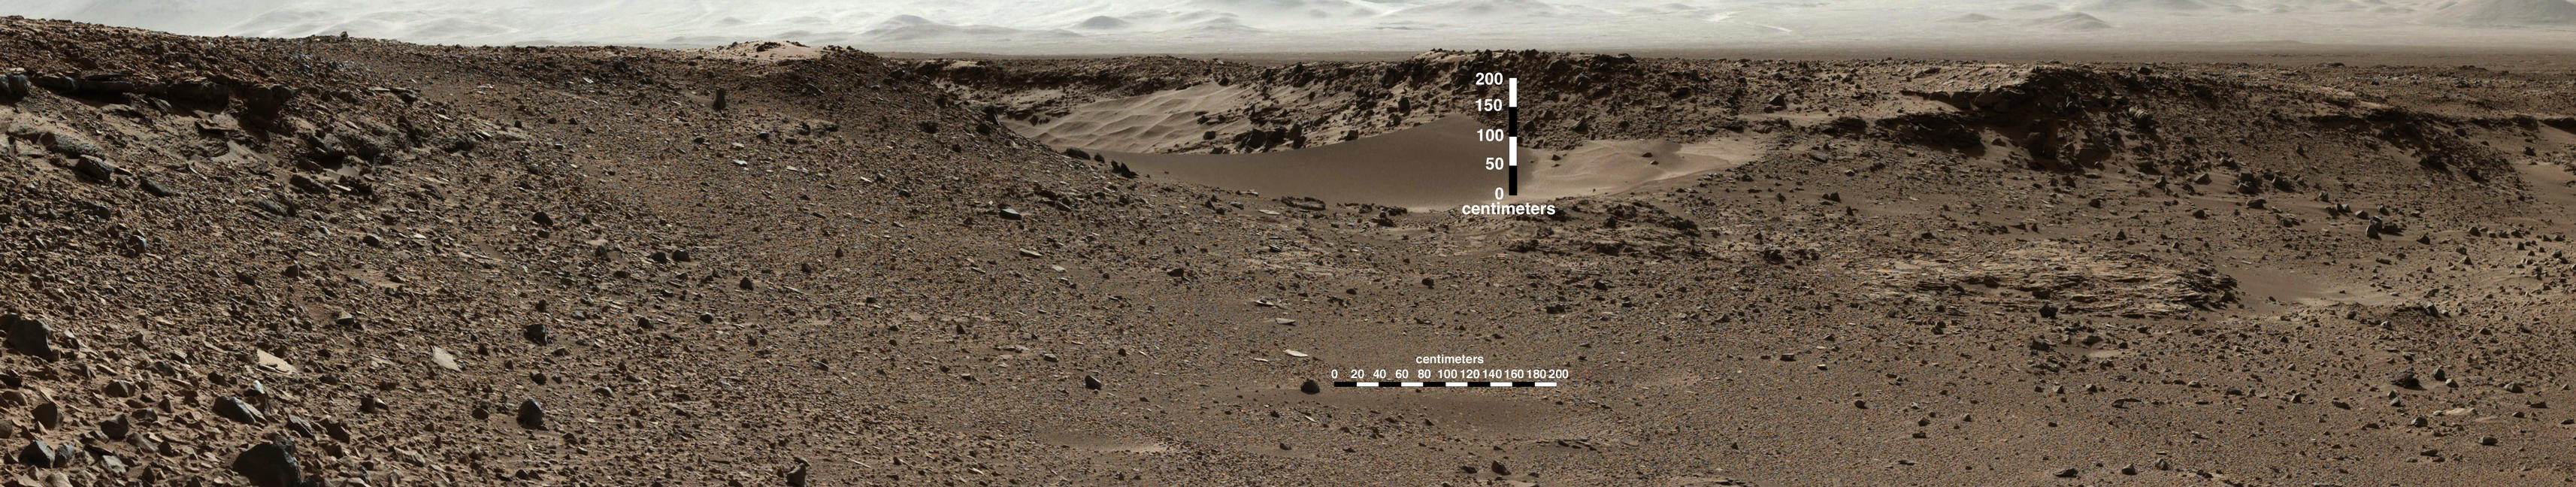 This scene combines images taken by the left-eye camera of the Mast Camera (Mastcam) instrument on NASA's Curiosity Mars rover during the midafternoon, local Mars solar time, of the mission's 526th Martian day, or sol (Jan. 28, 2014).